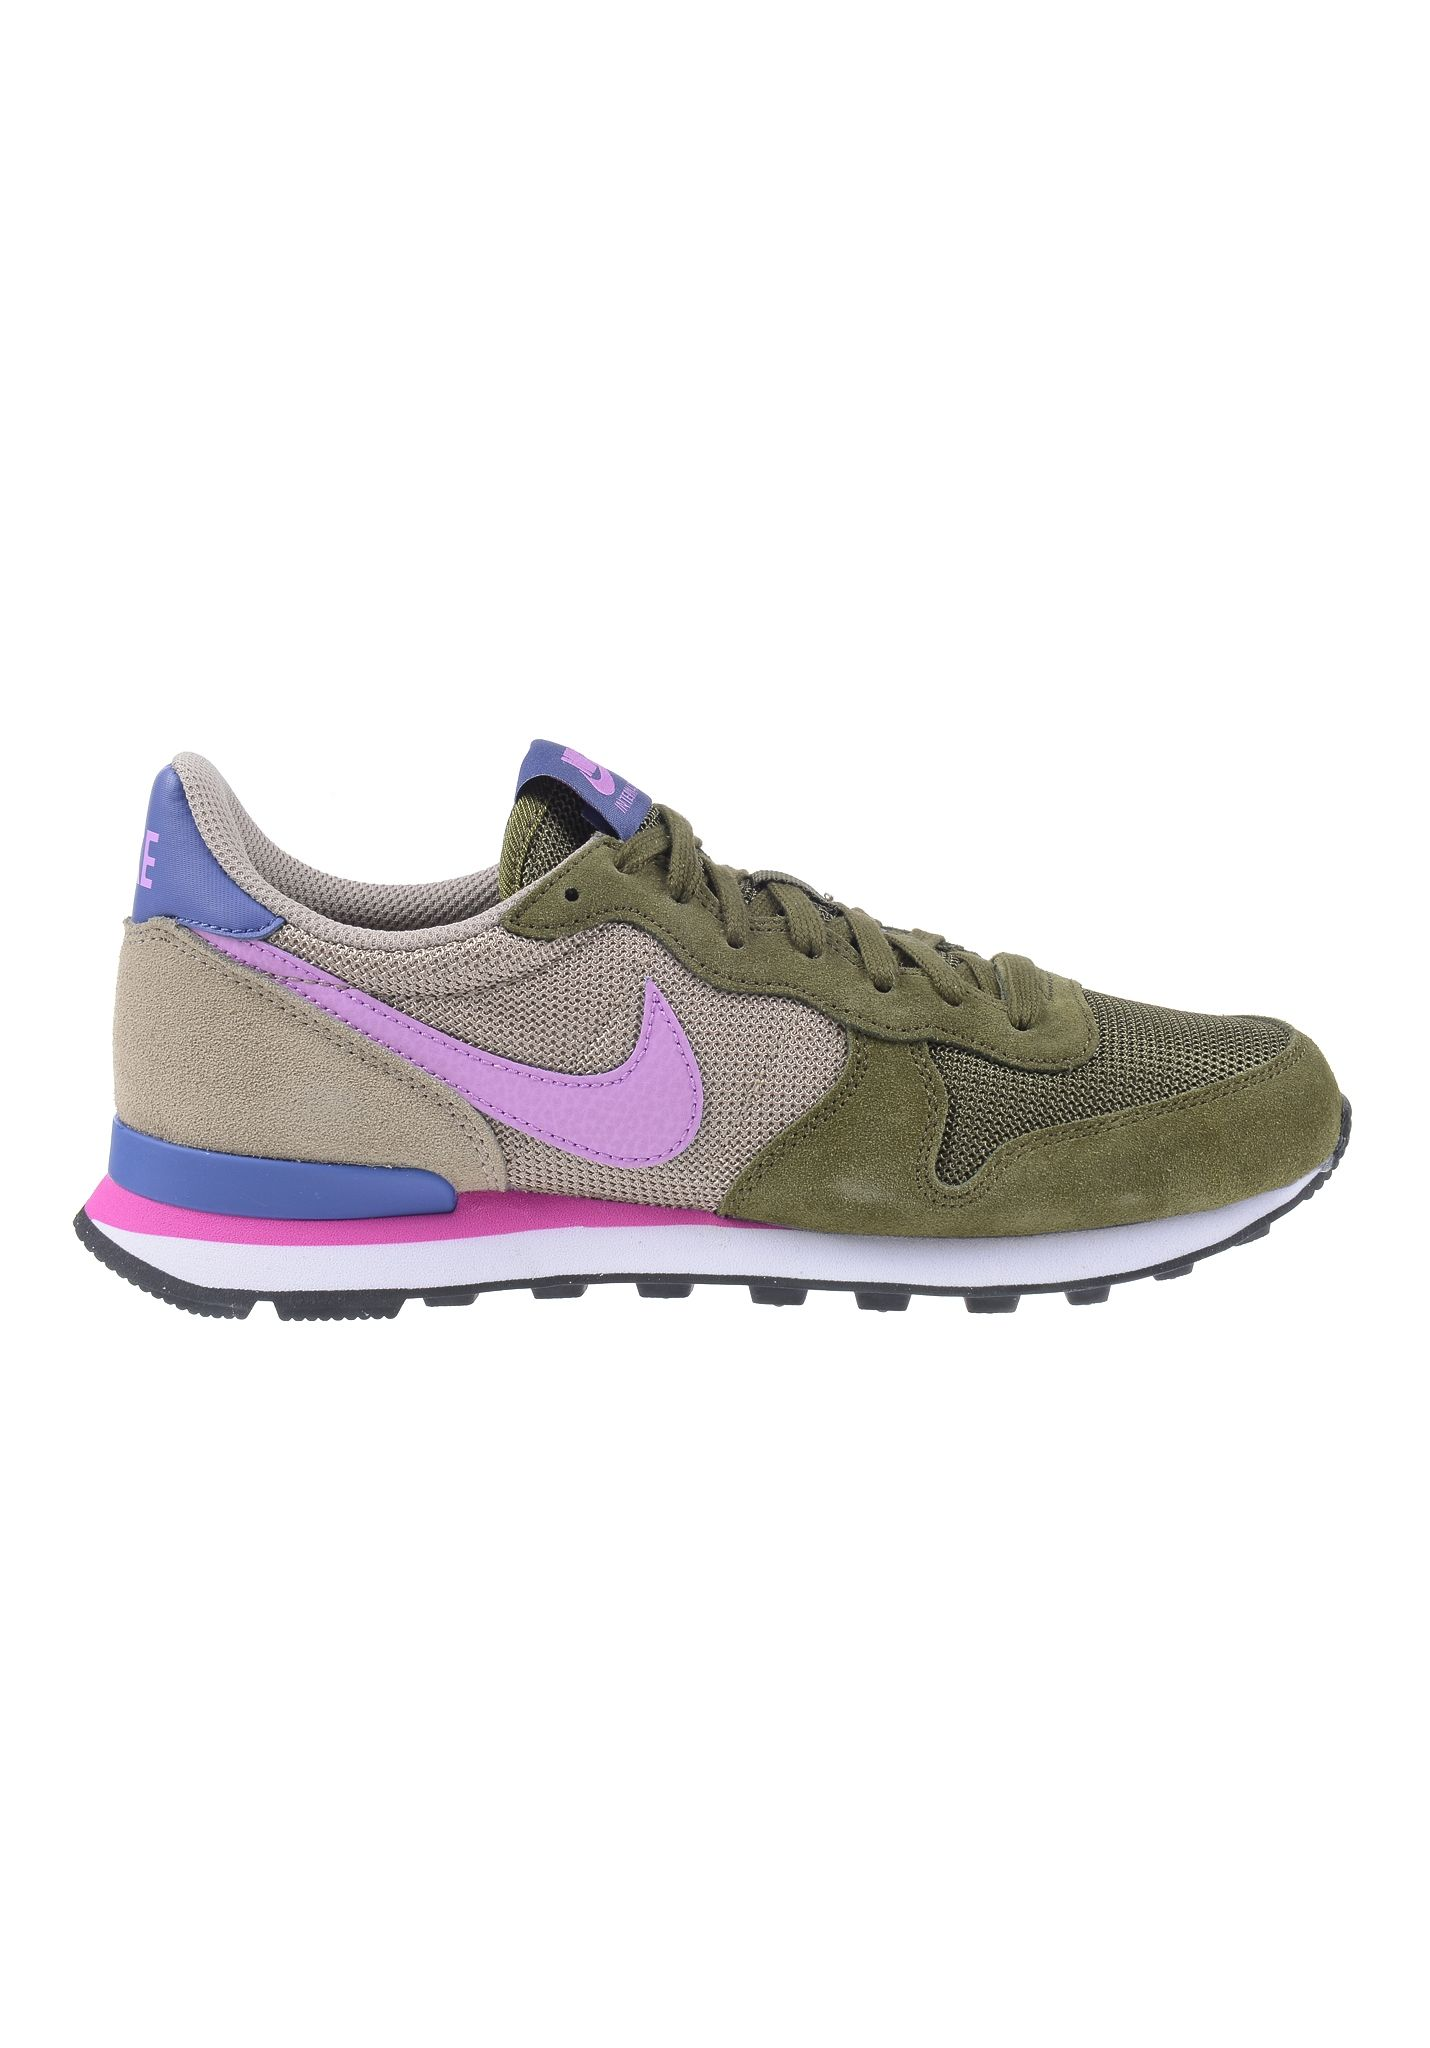 new style e4ac1 15a18 ... wholesale nike sportswear internationalist sneakers for women green  planet sports de29d 62911